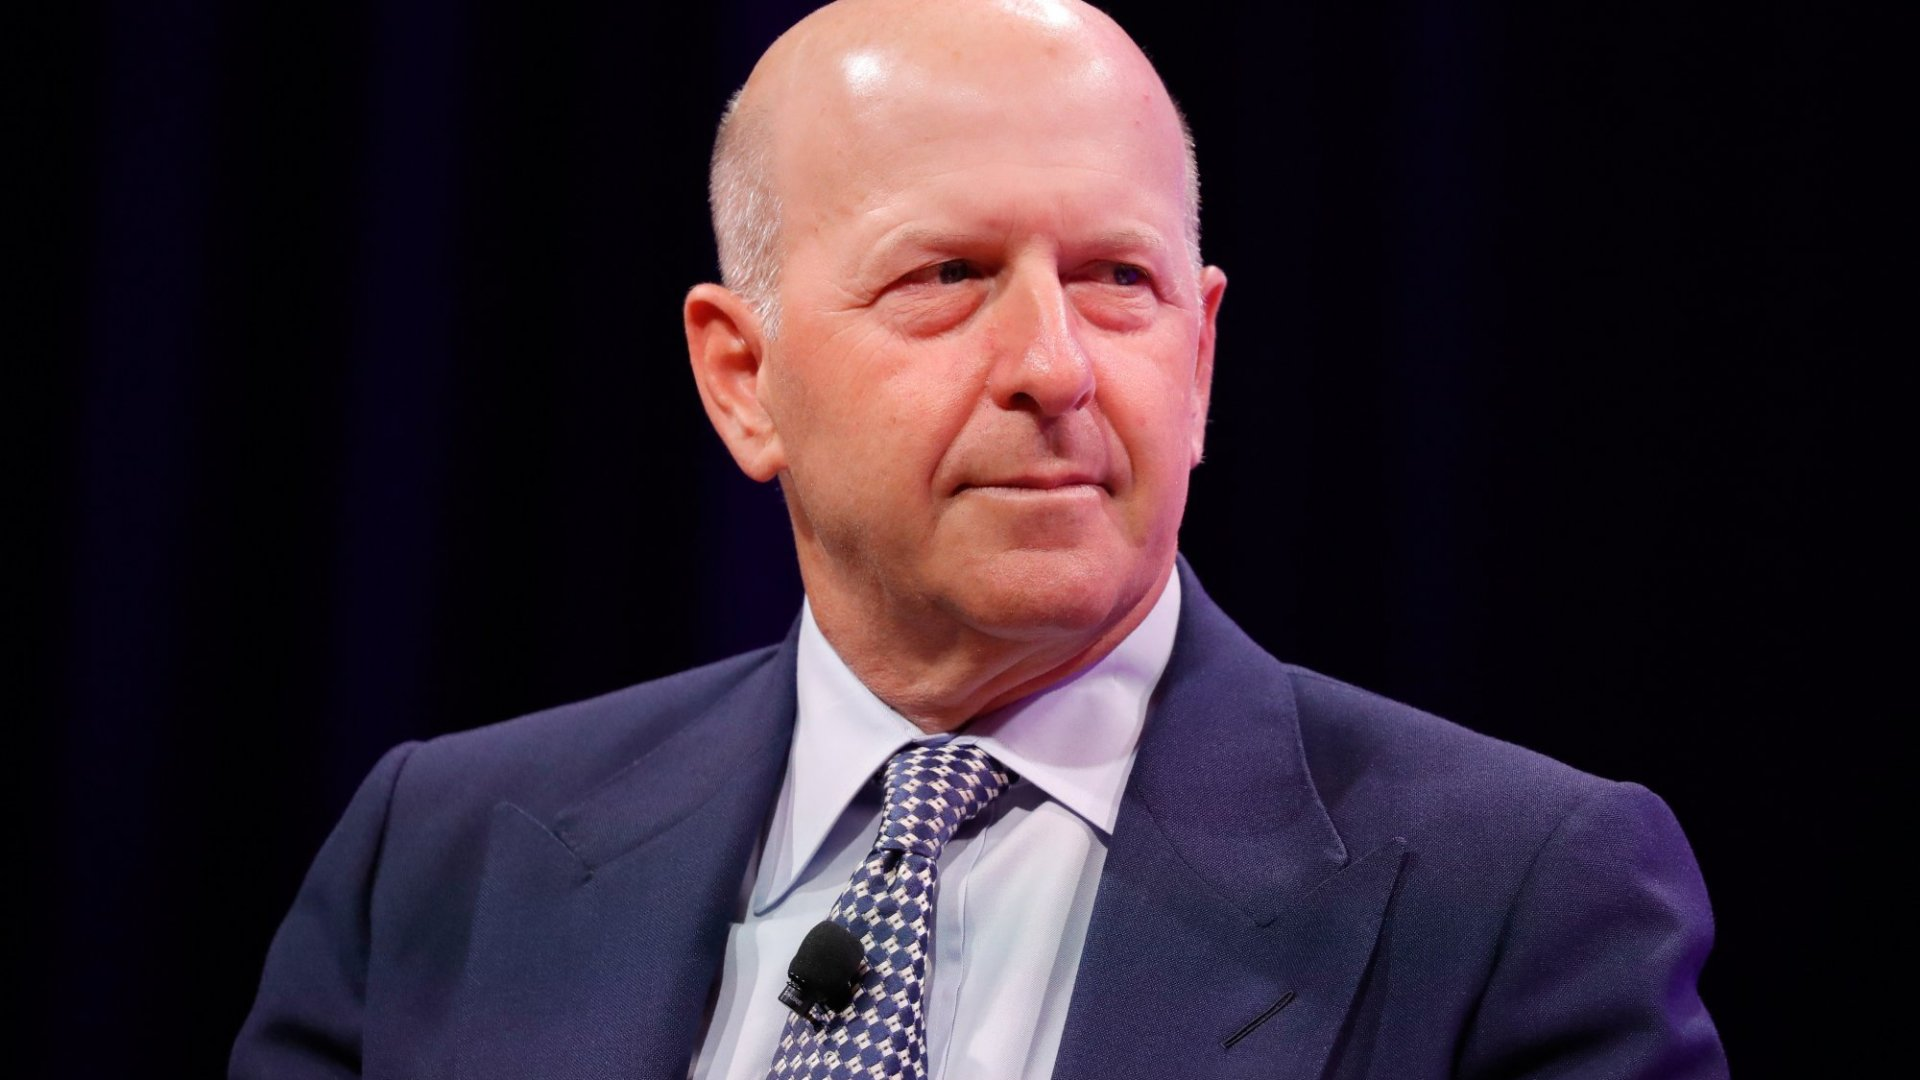 12 Extremely Personal Details About the New CEO of Goldman Sachs